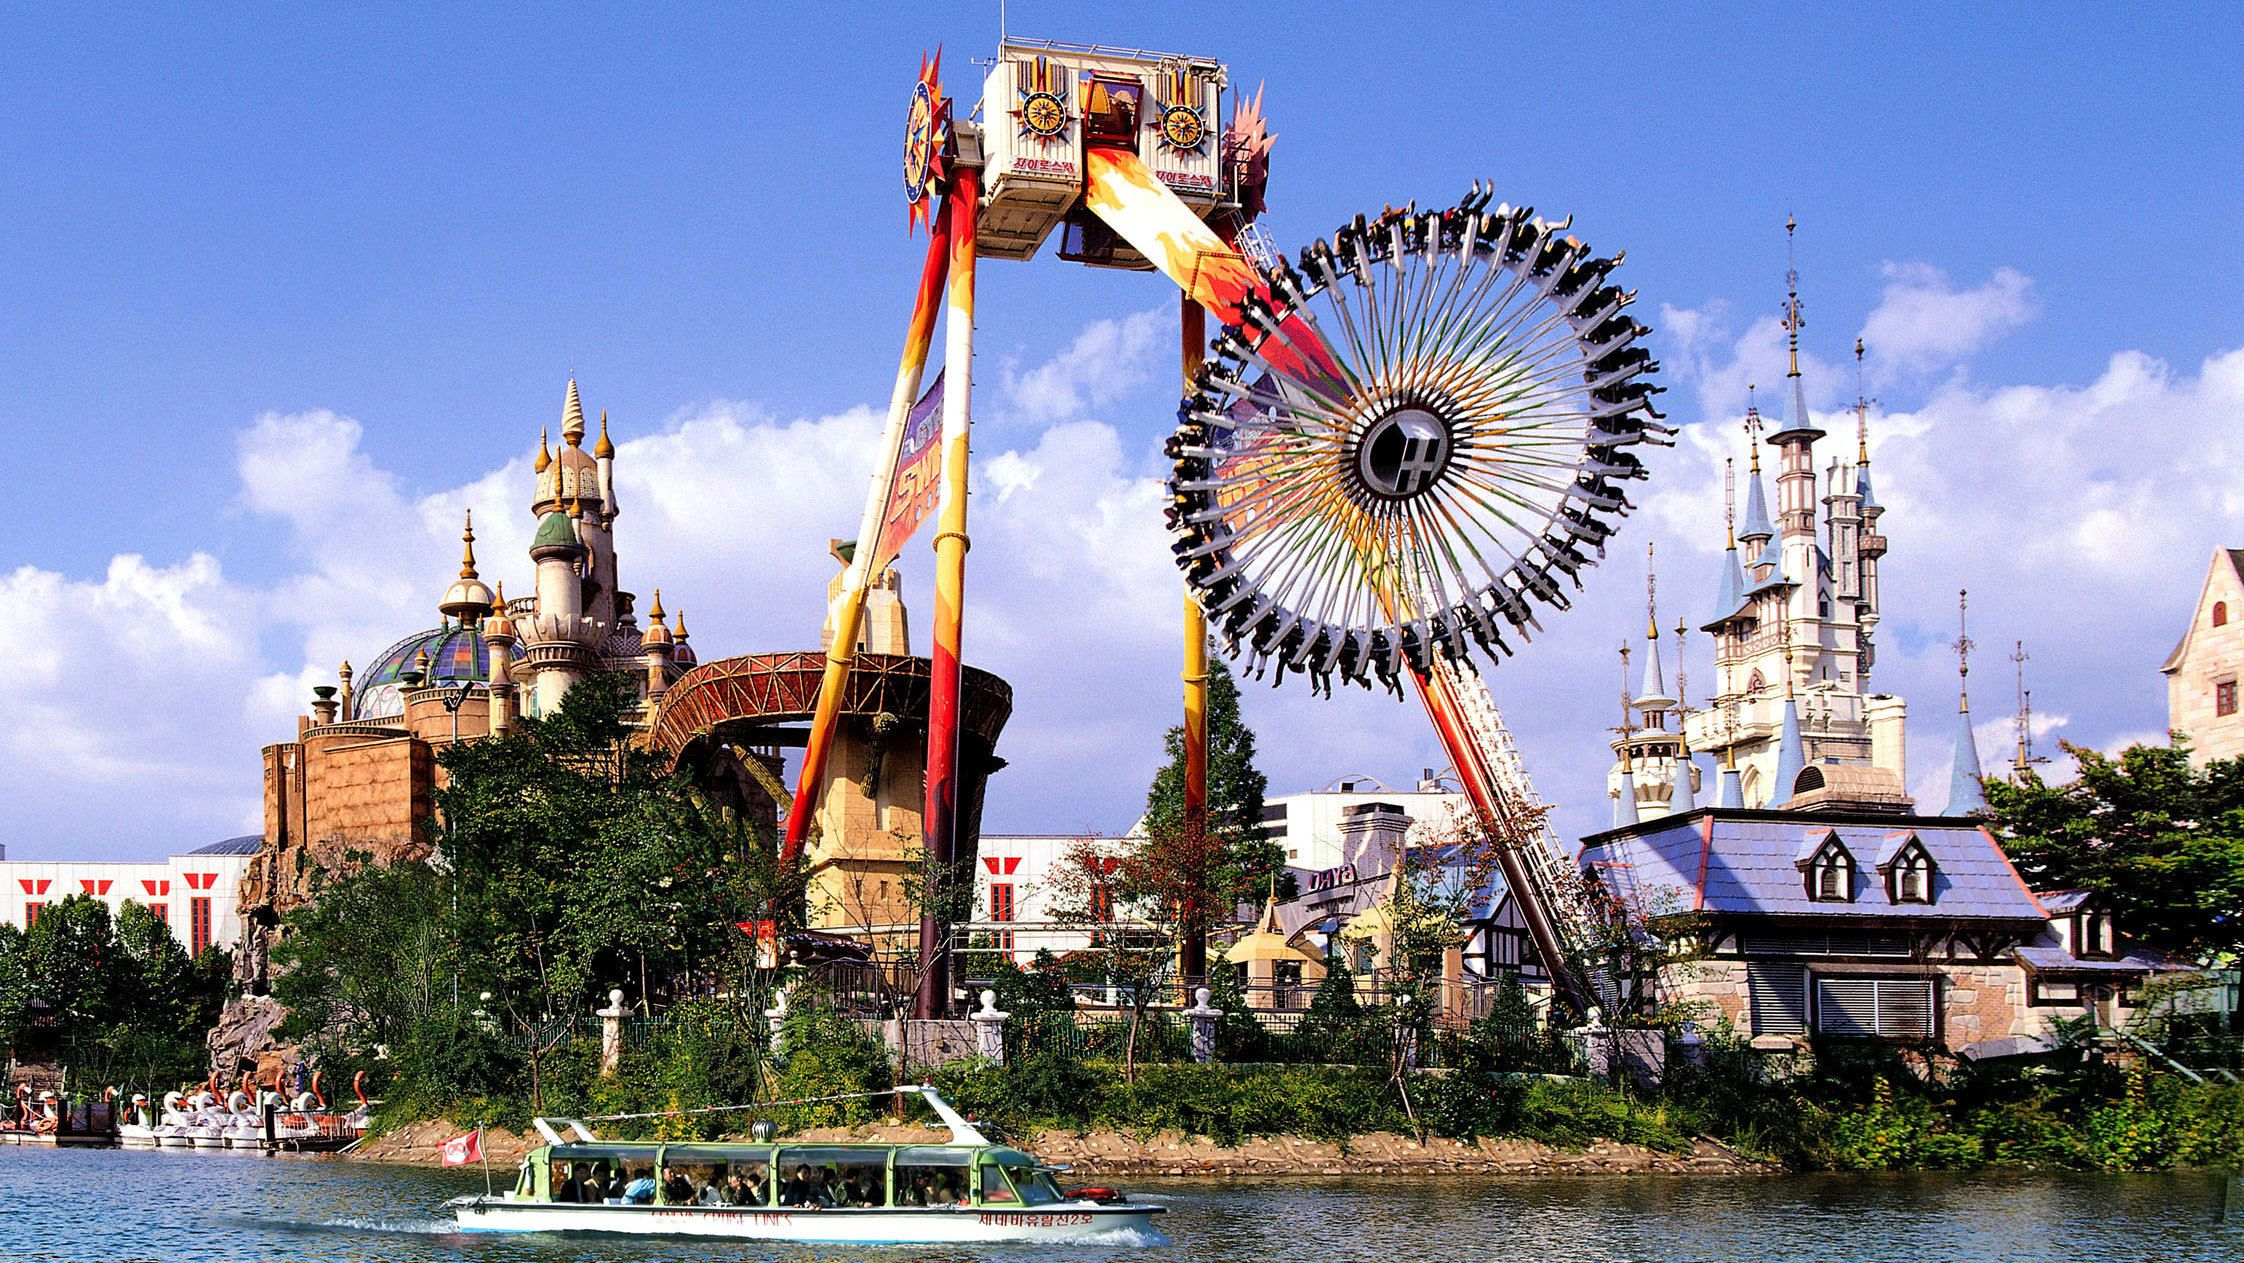 Landscape view of Lotte World Theme Park in Seoul